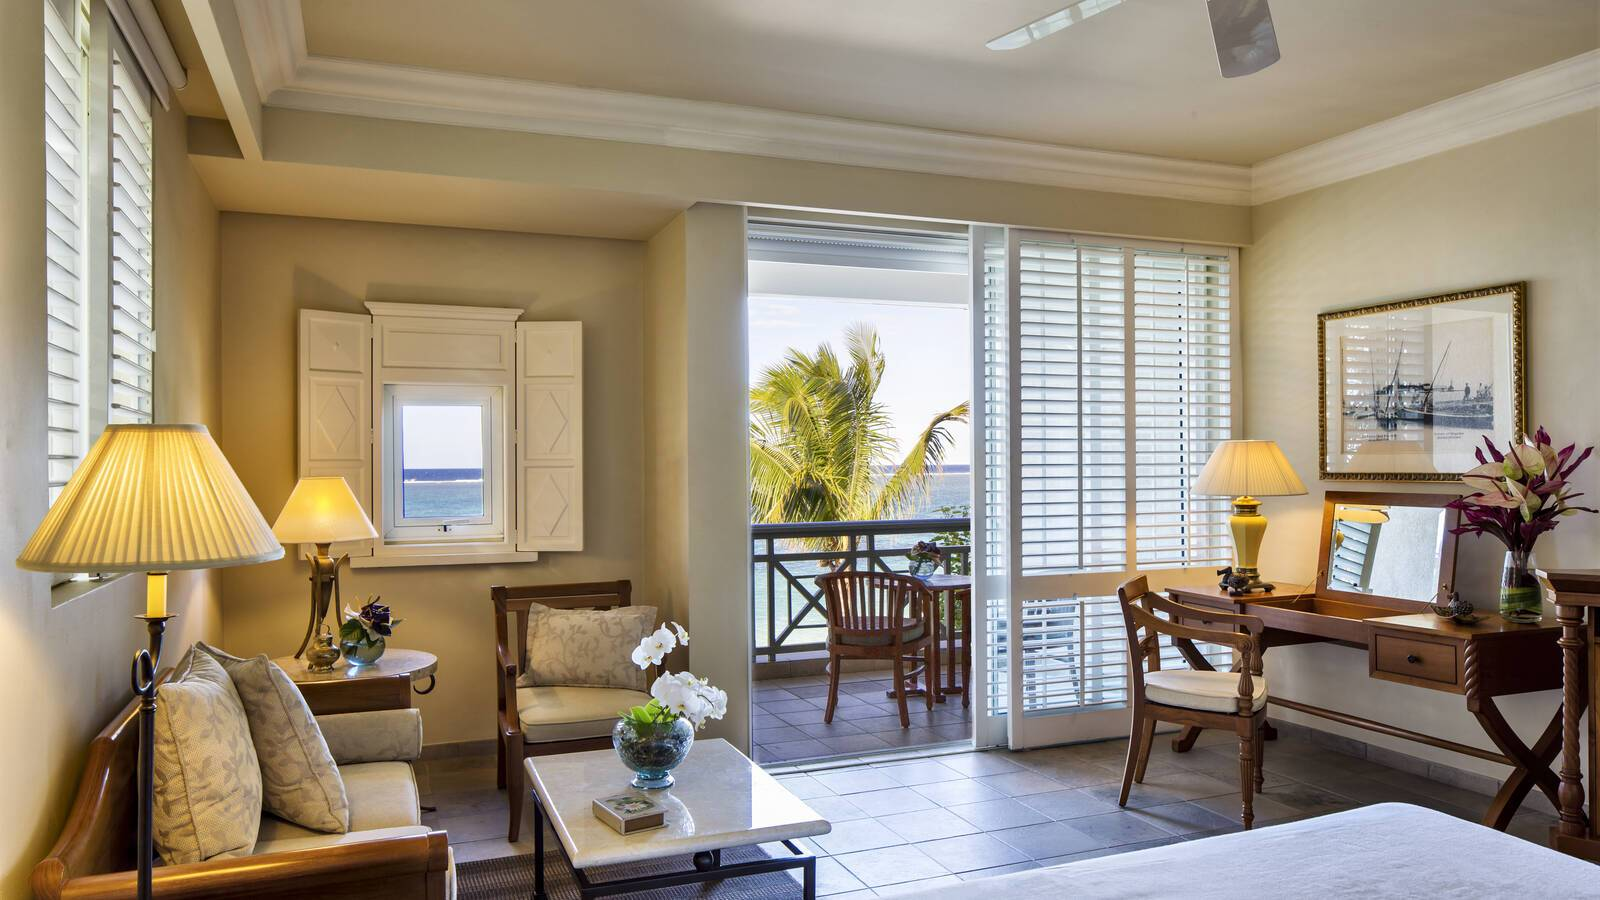 TheResidence Mauritius Chambre Colonial Ocean Front Maurice